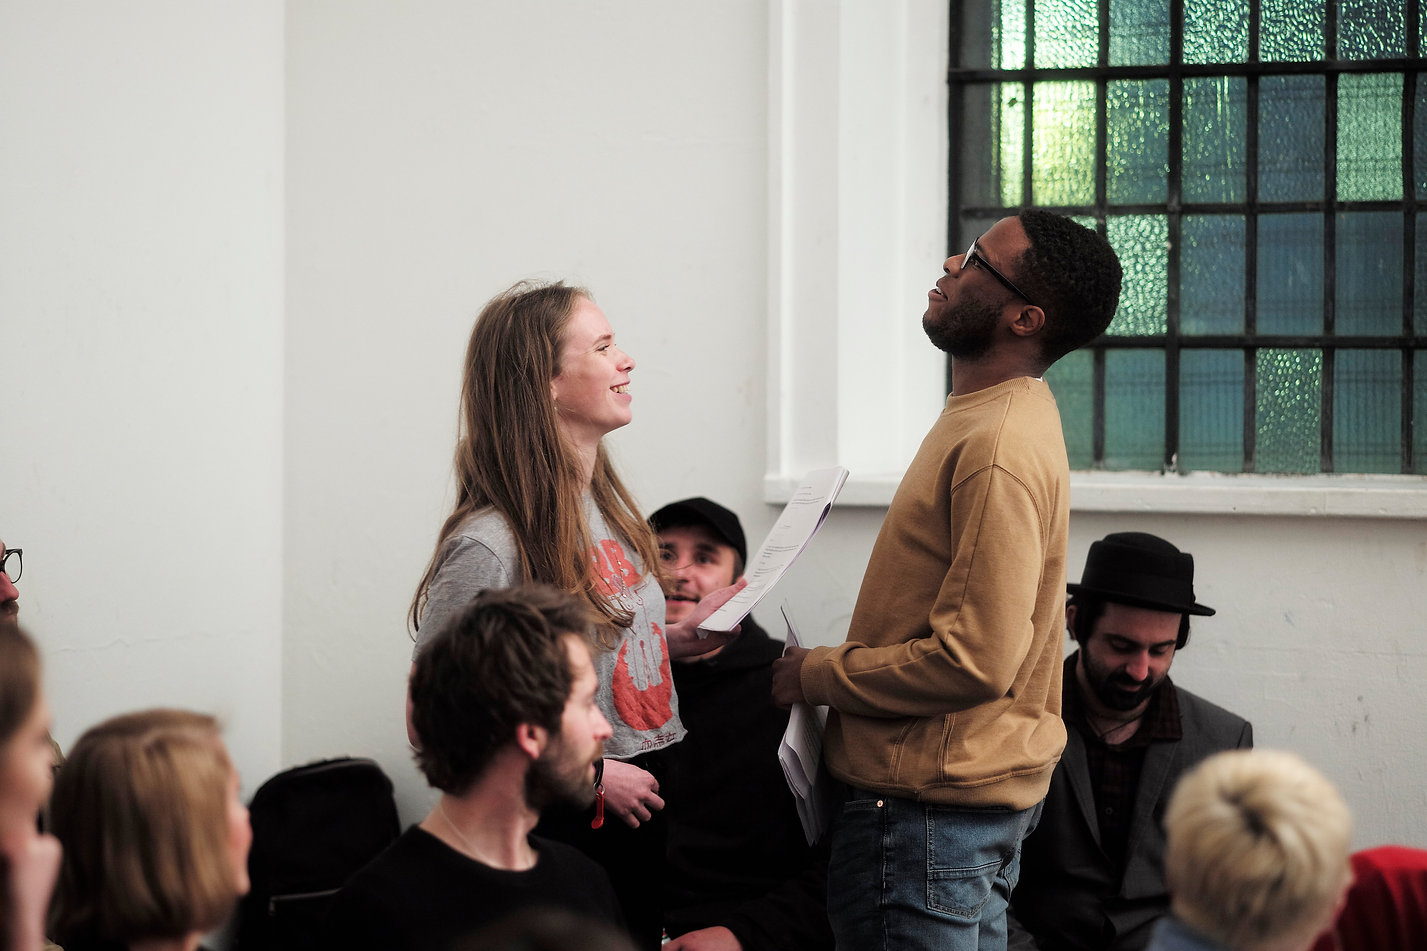 Image Description: The actors, still holding their scripts, are now immersed in the audience, both looking triumphant.